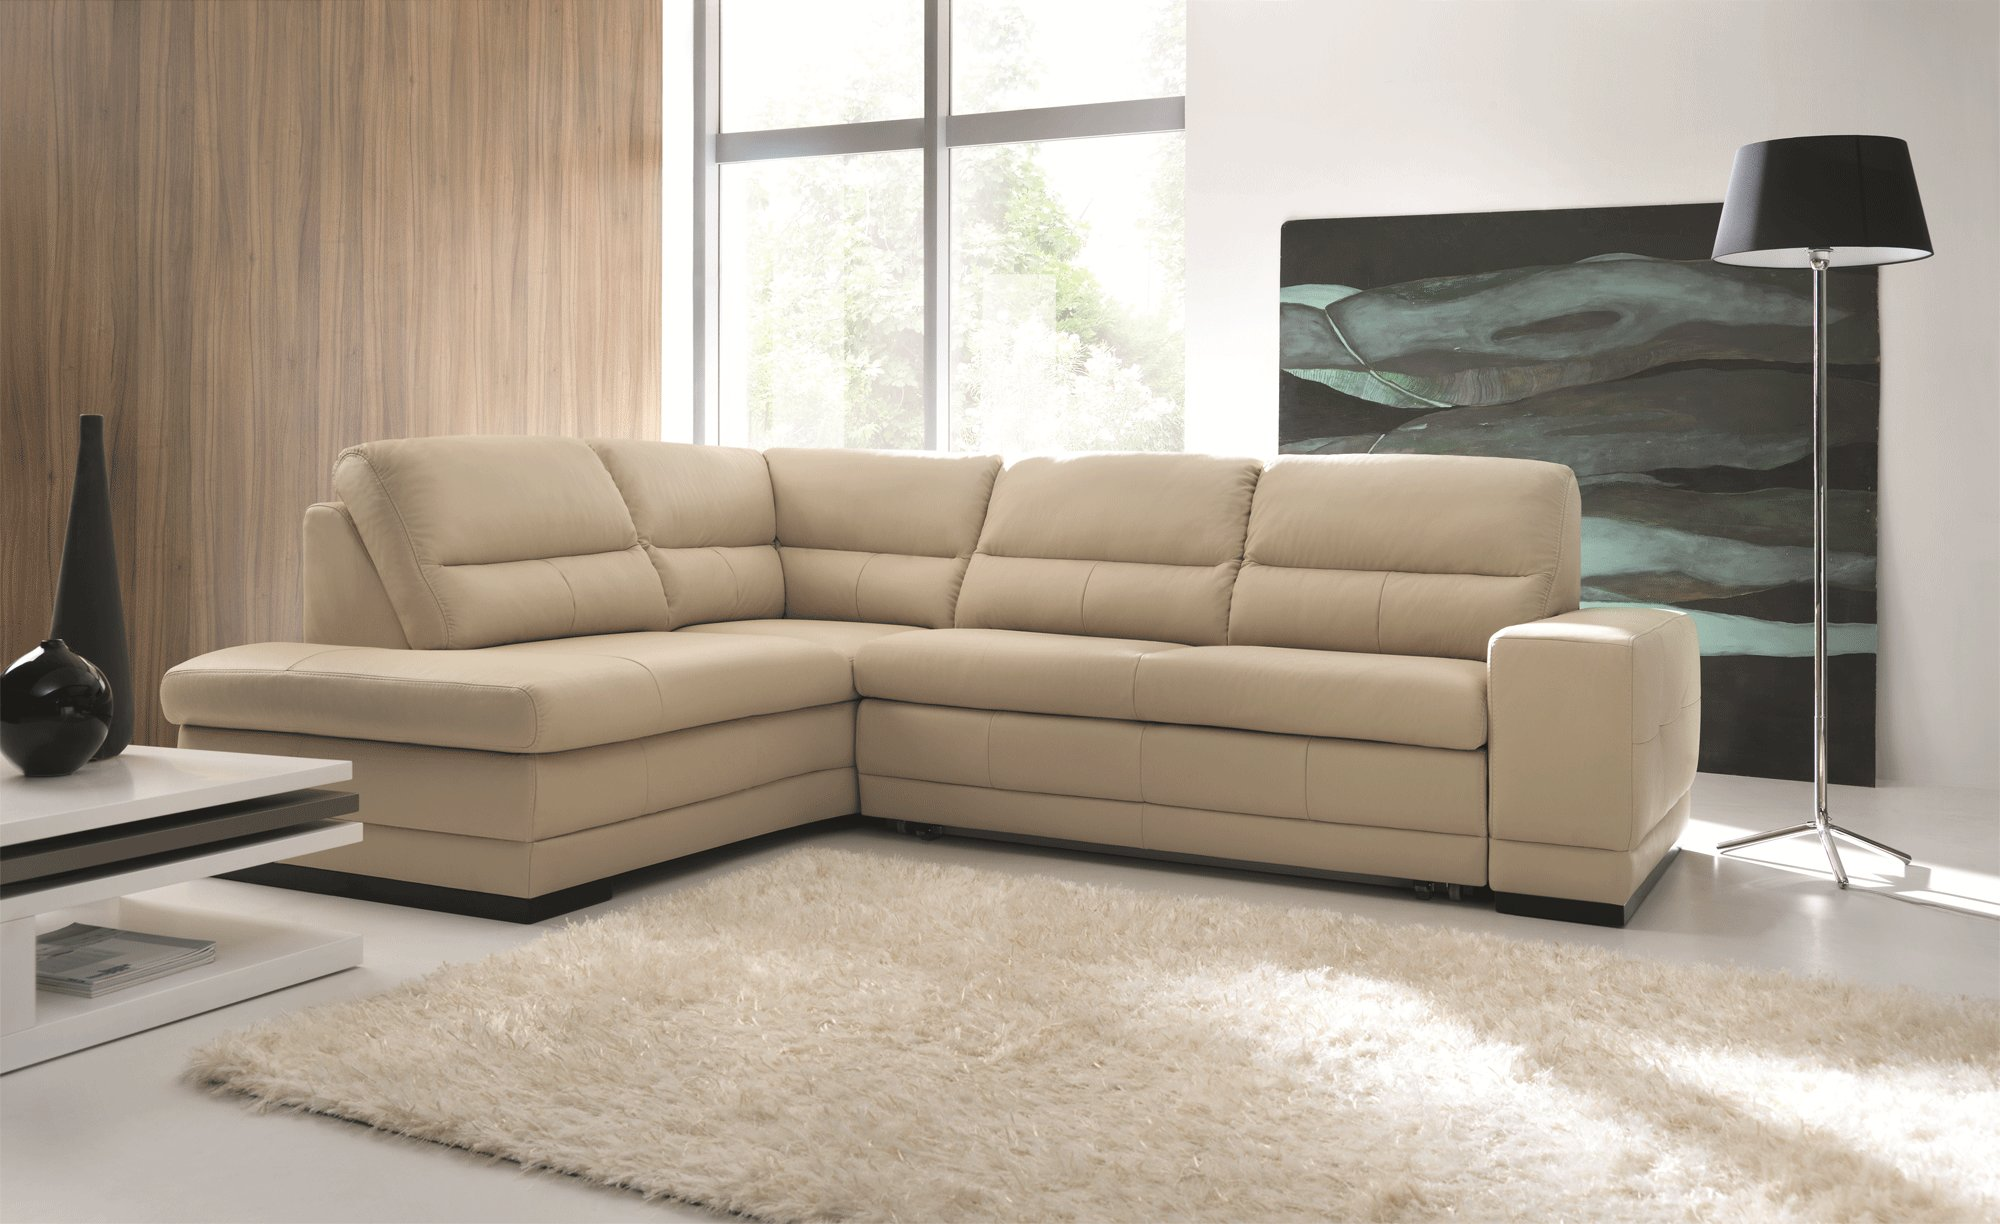 Luxurious Italian Leather Living Room Furniture